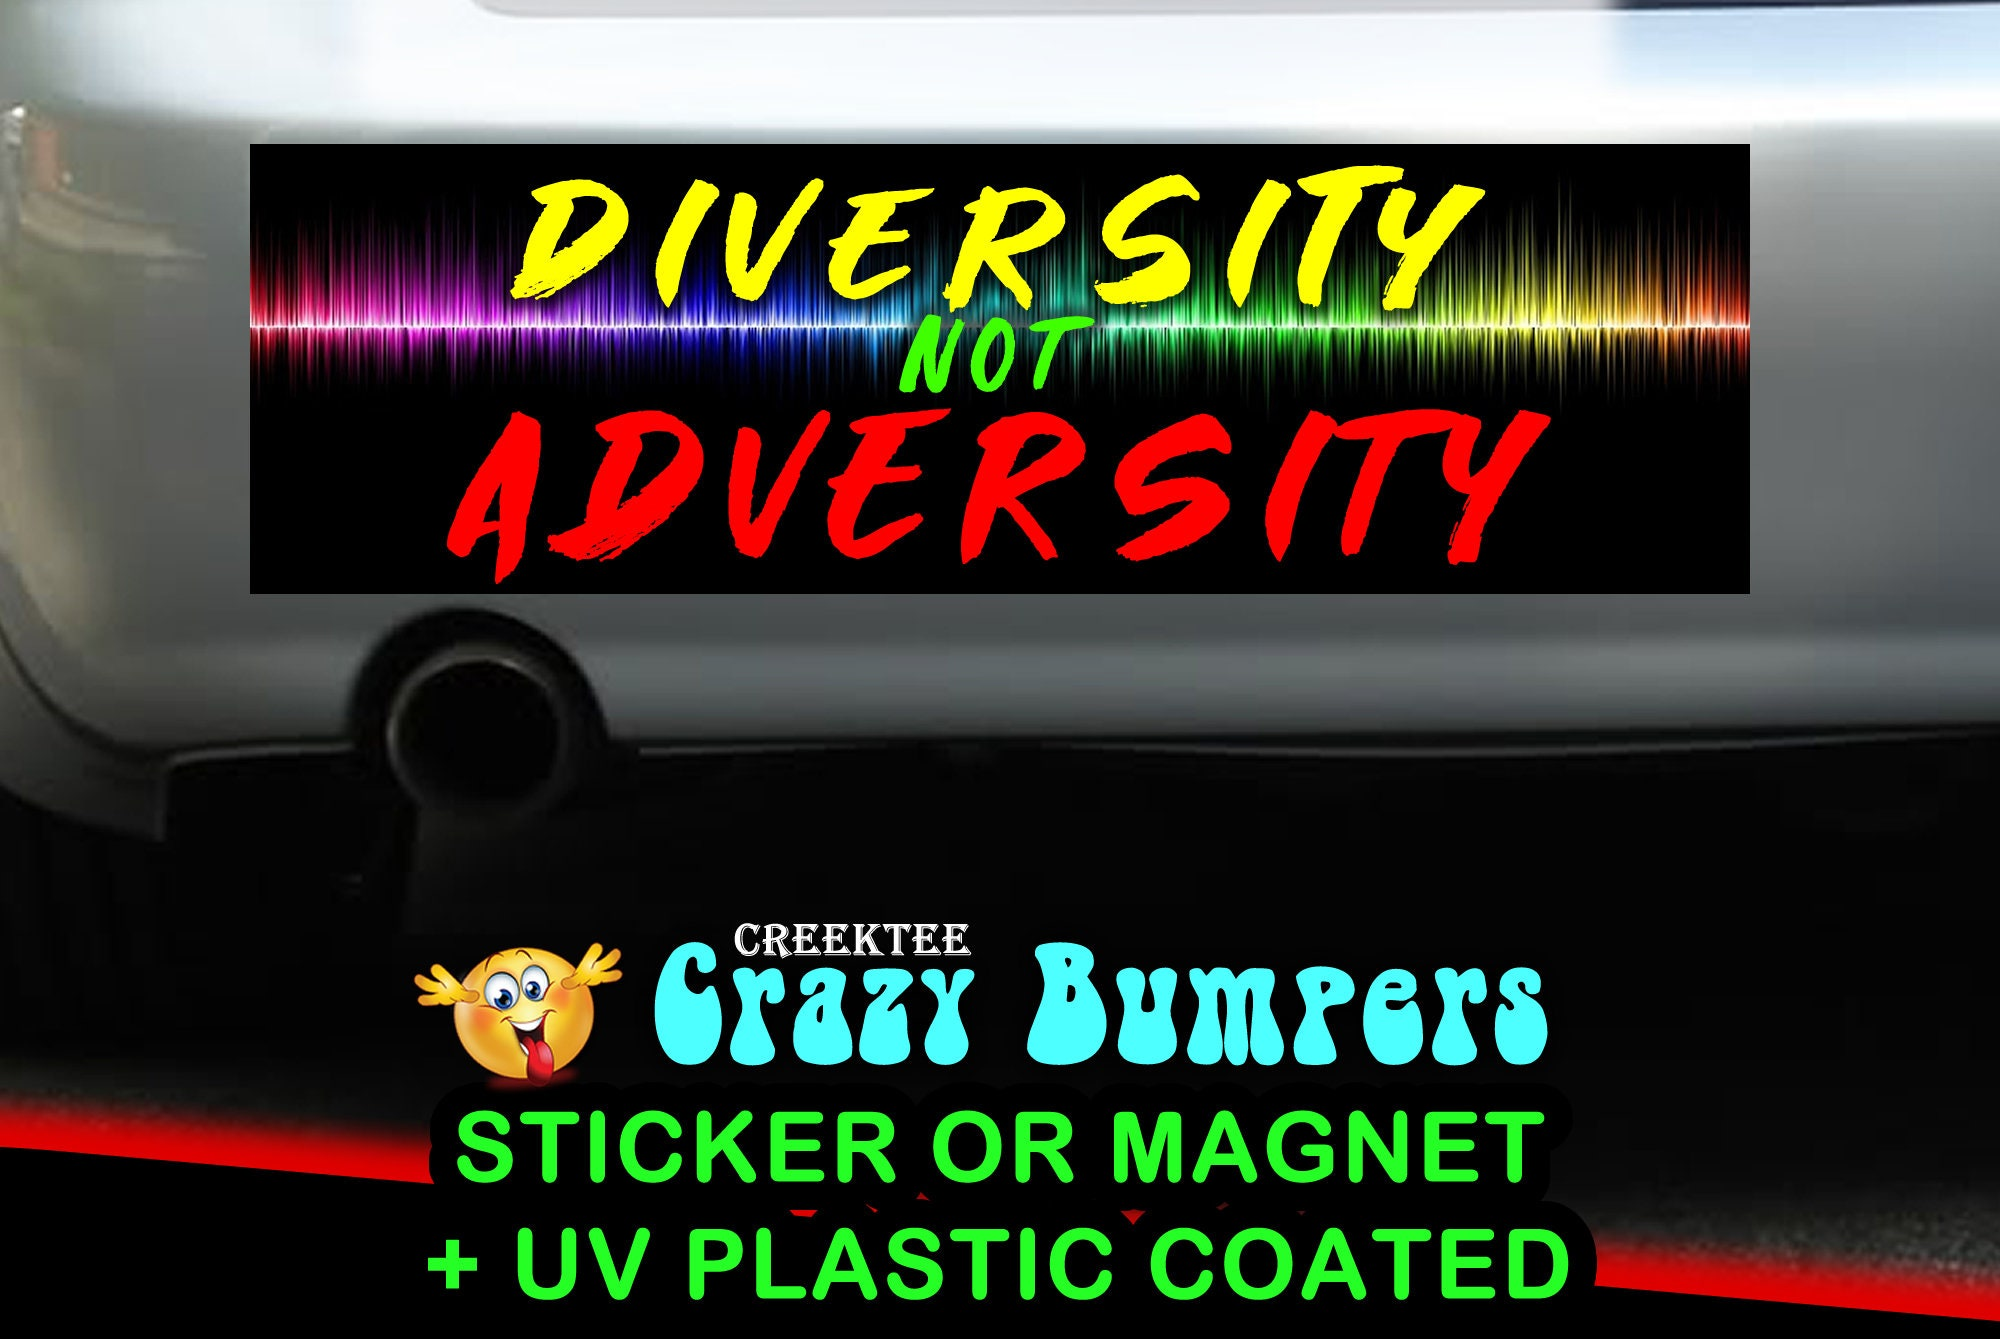 $7.99 - Diversity Not Adversity 10 x 3 Bumper Sticker or Magnetic Bumper Sticker Available